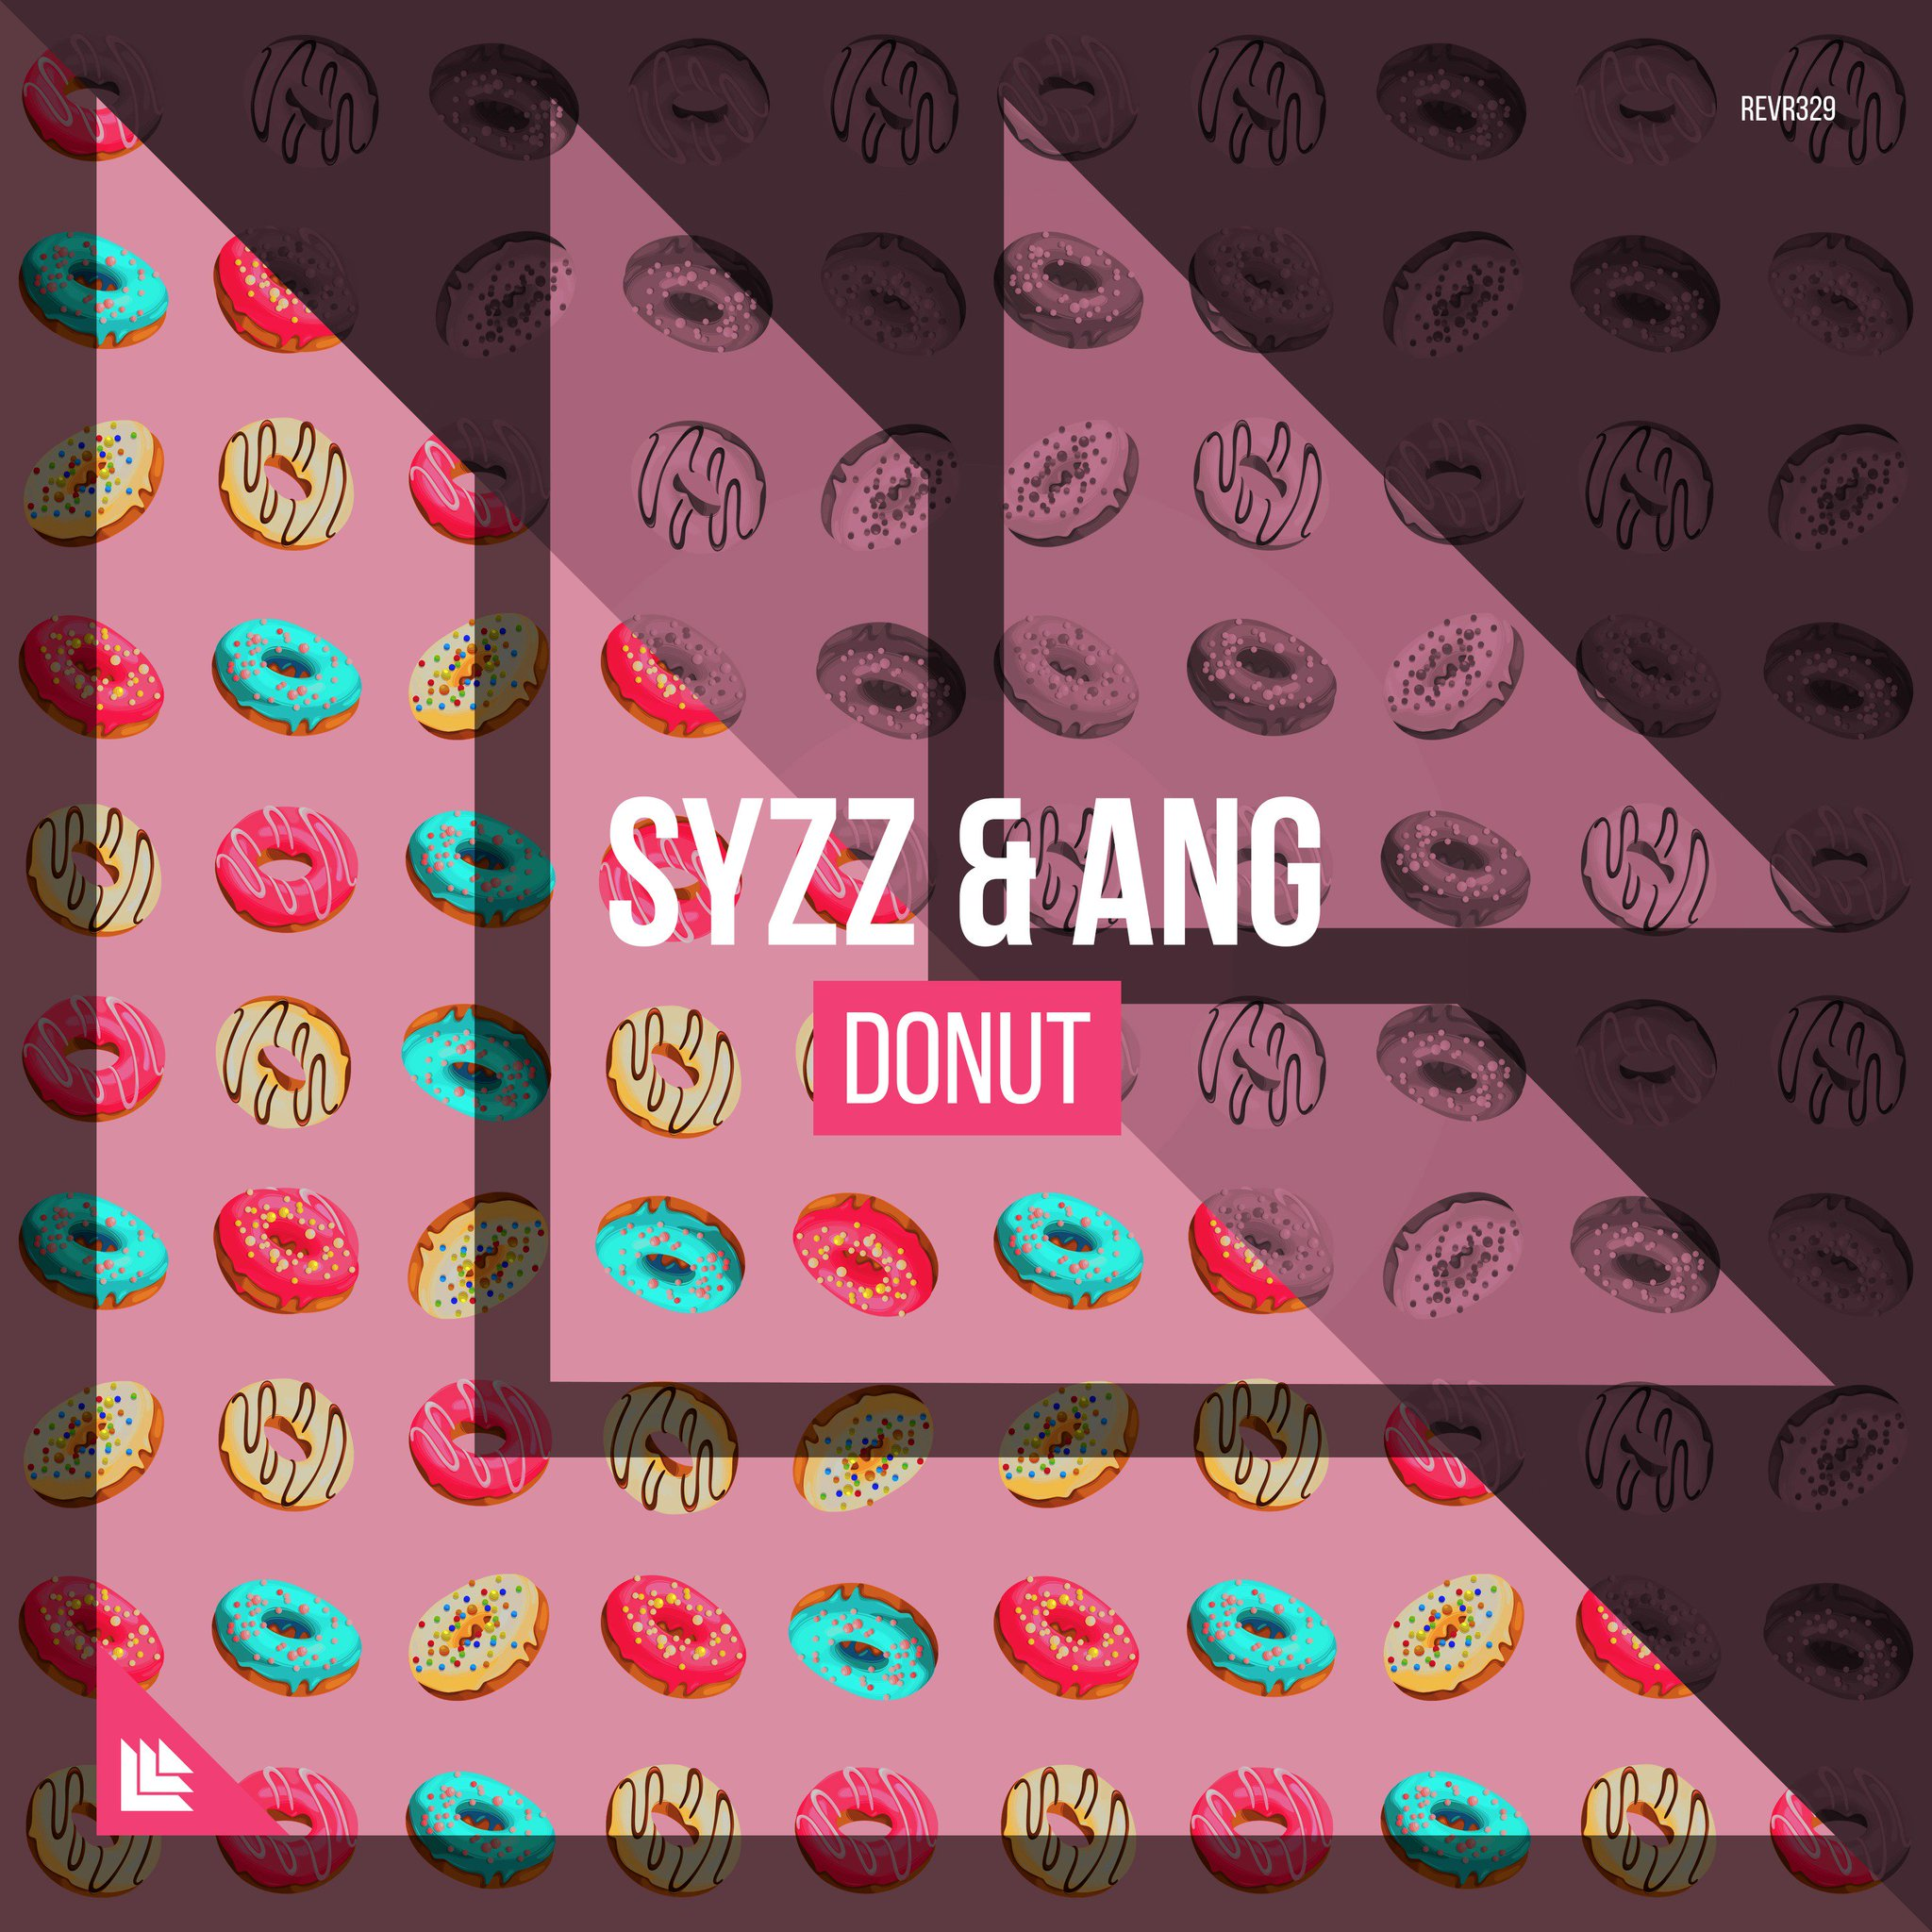 DONUT!������ Out now! Listen here ➡️ https://t.co/8qiqcwz5pj @SYZZmusic @ANGdjs https://t.co/34SdLE42EW